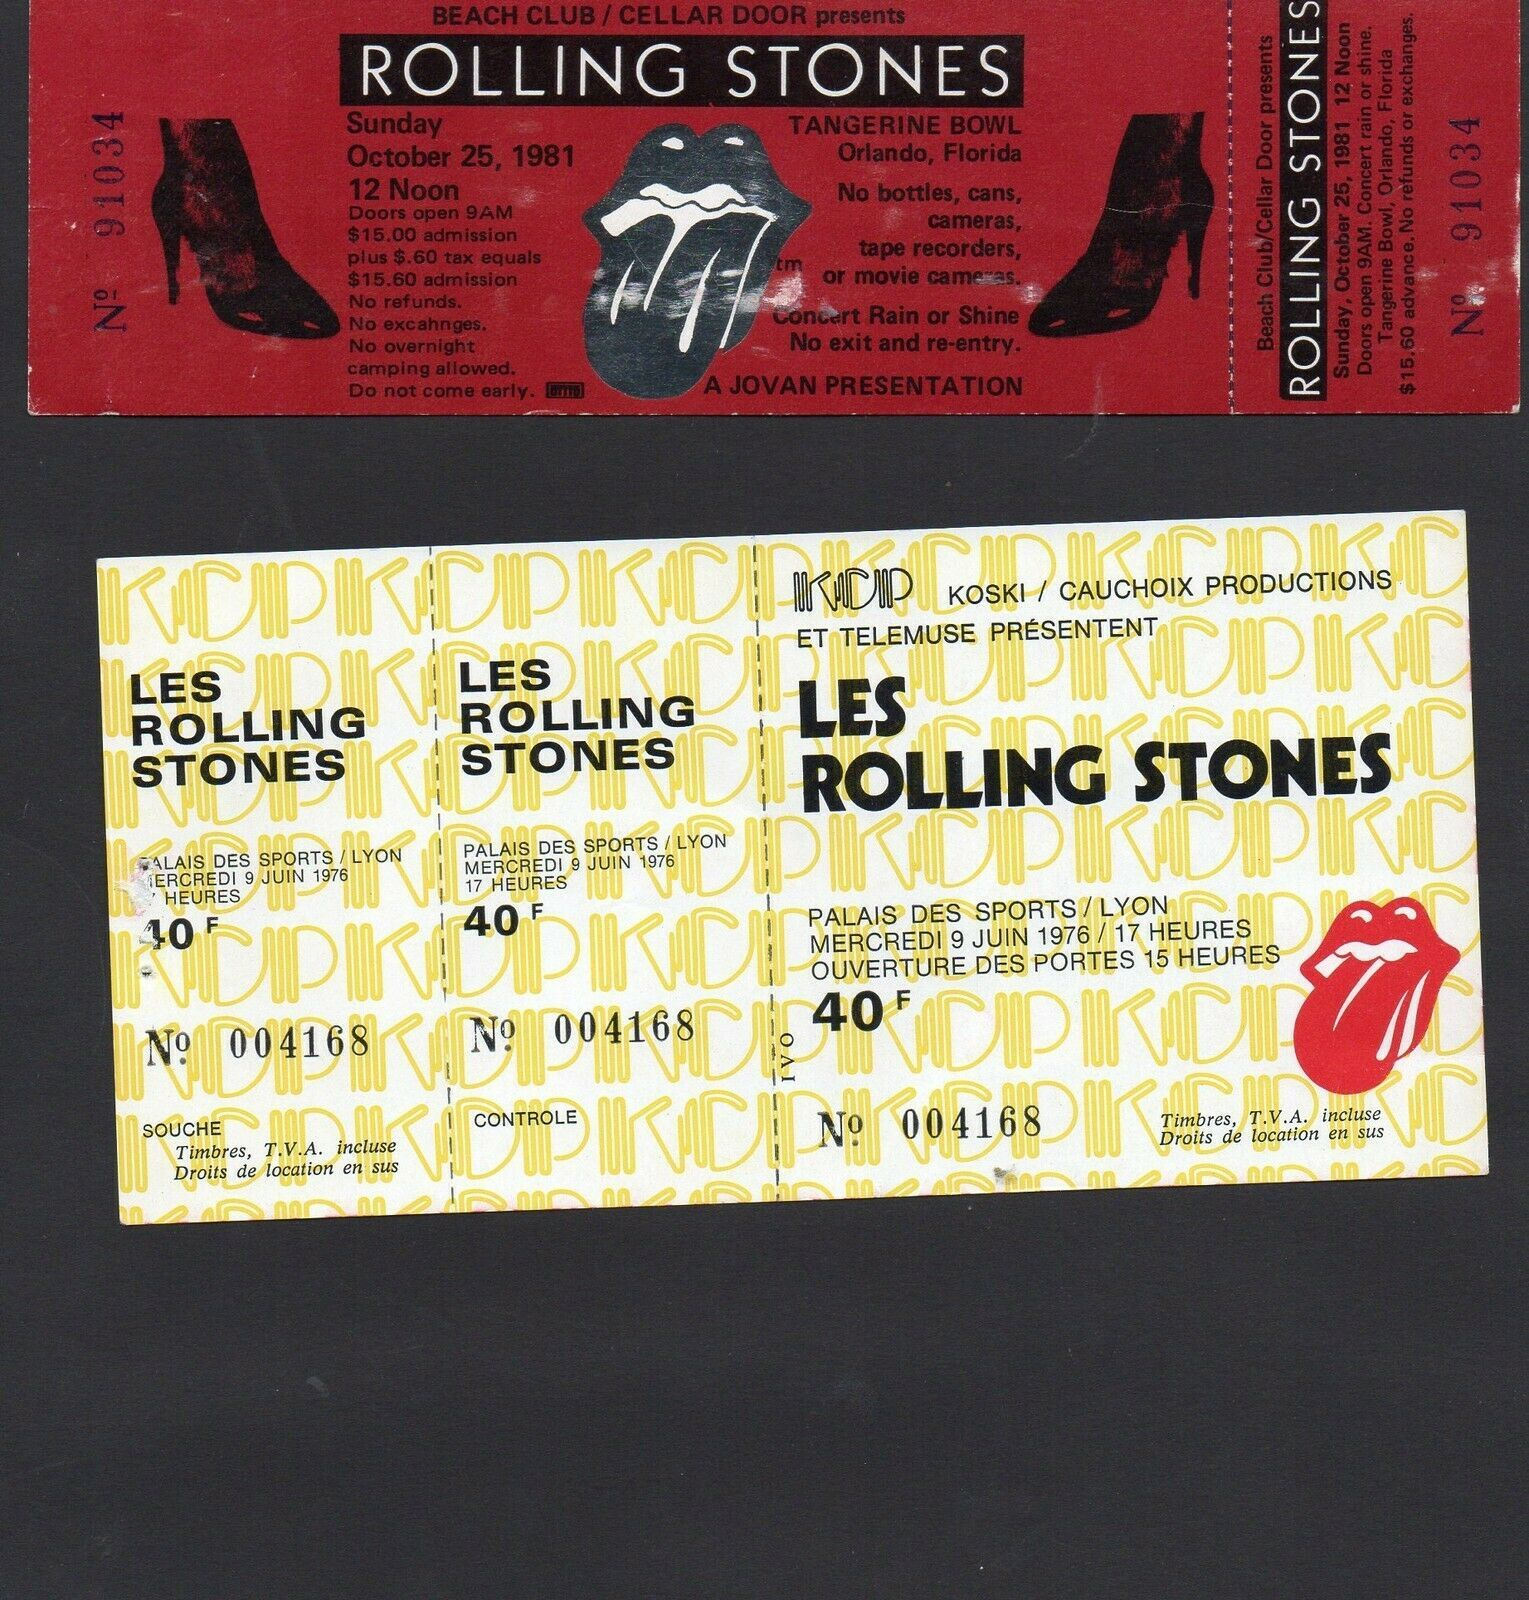 Primary image for ROLLING STONES - 4 vintage concert tickets - MICK JAGGER